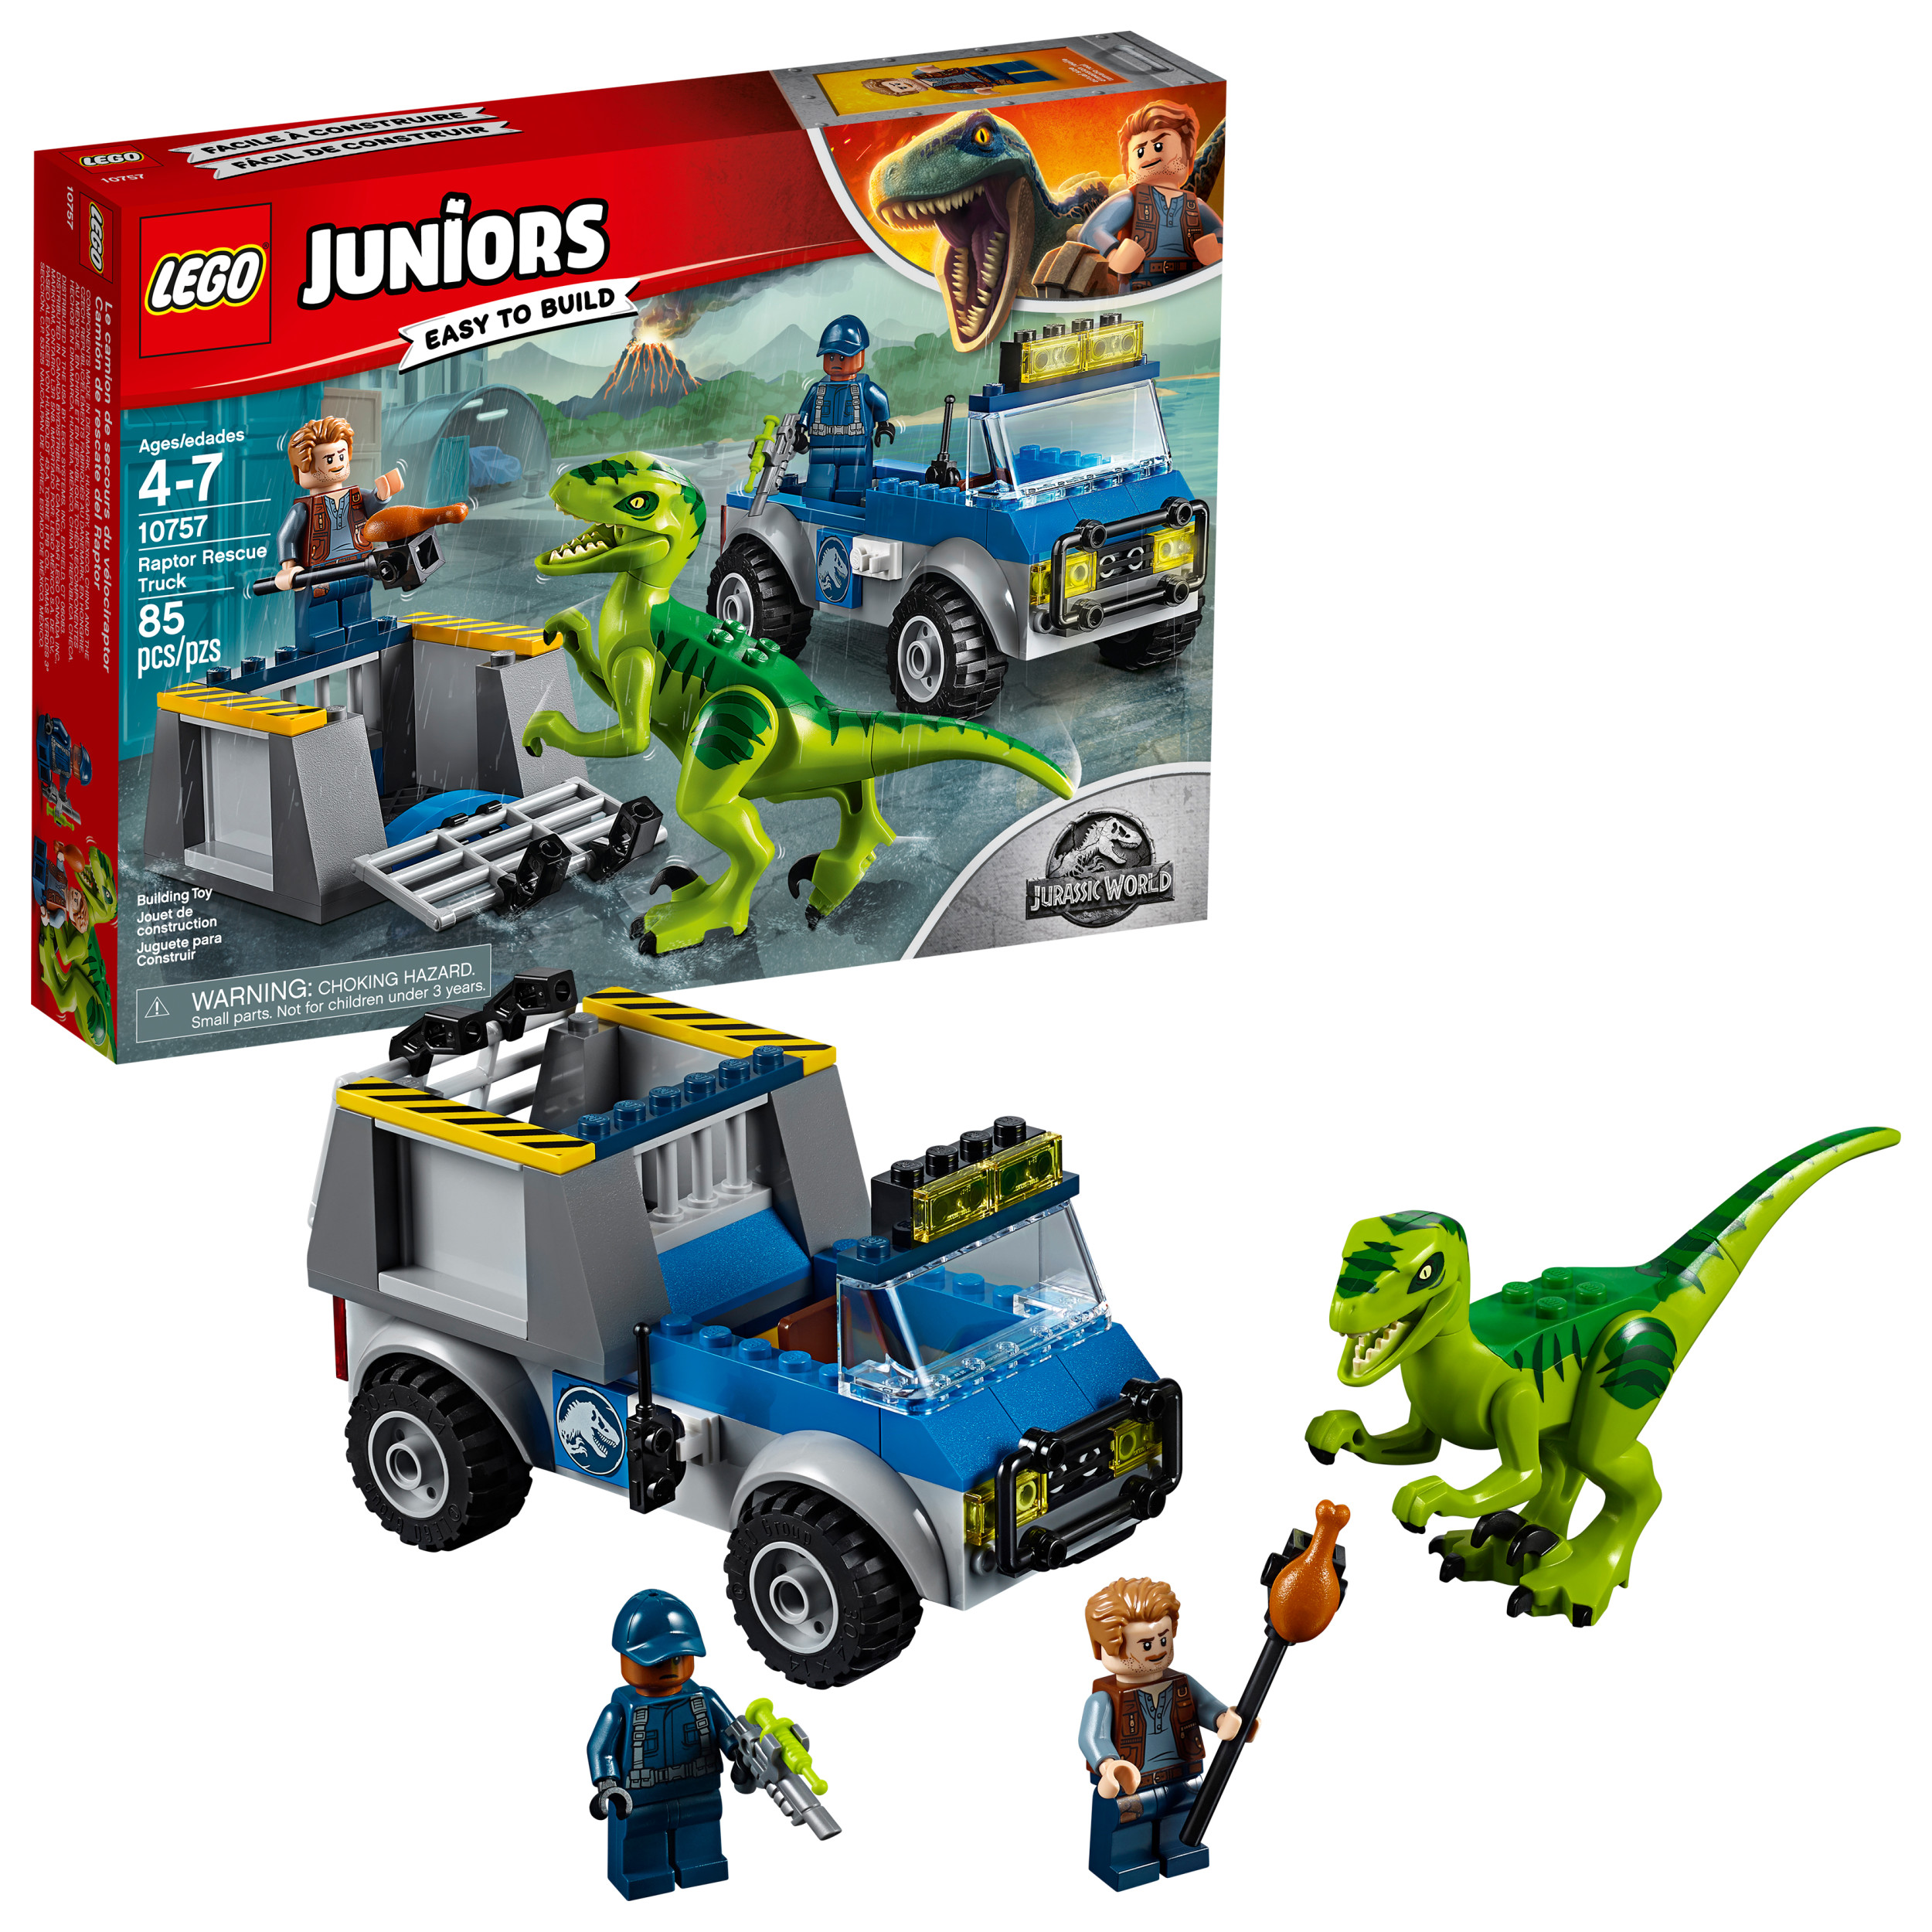 Lego Juniors Jurassic World Raptor Rescue Truck 10757 by LEGO System Inc